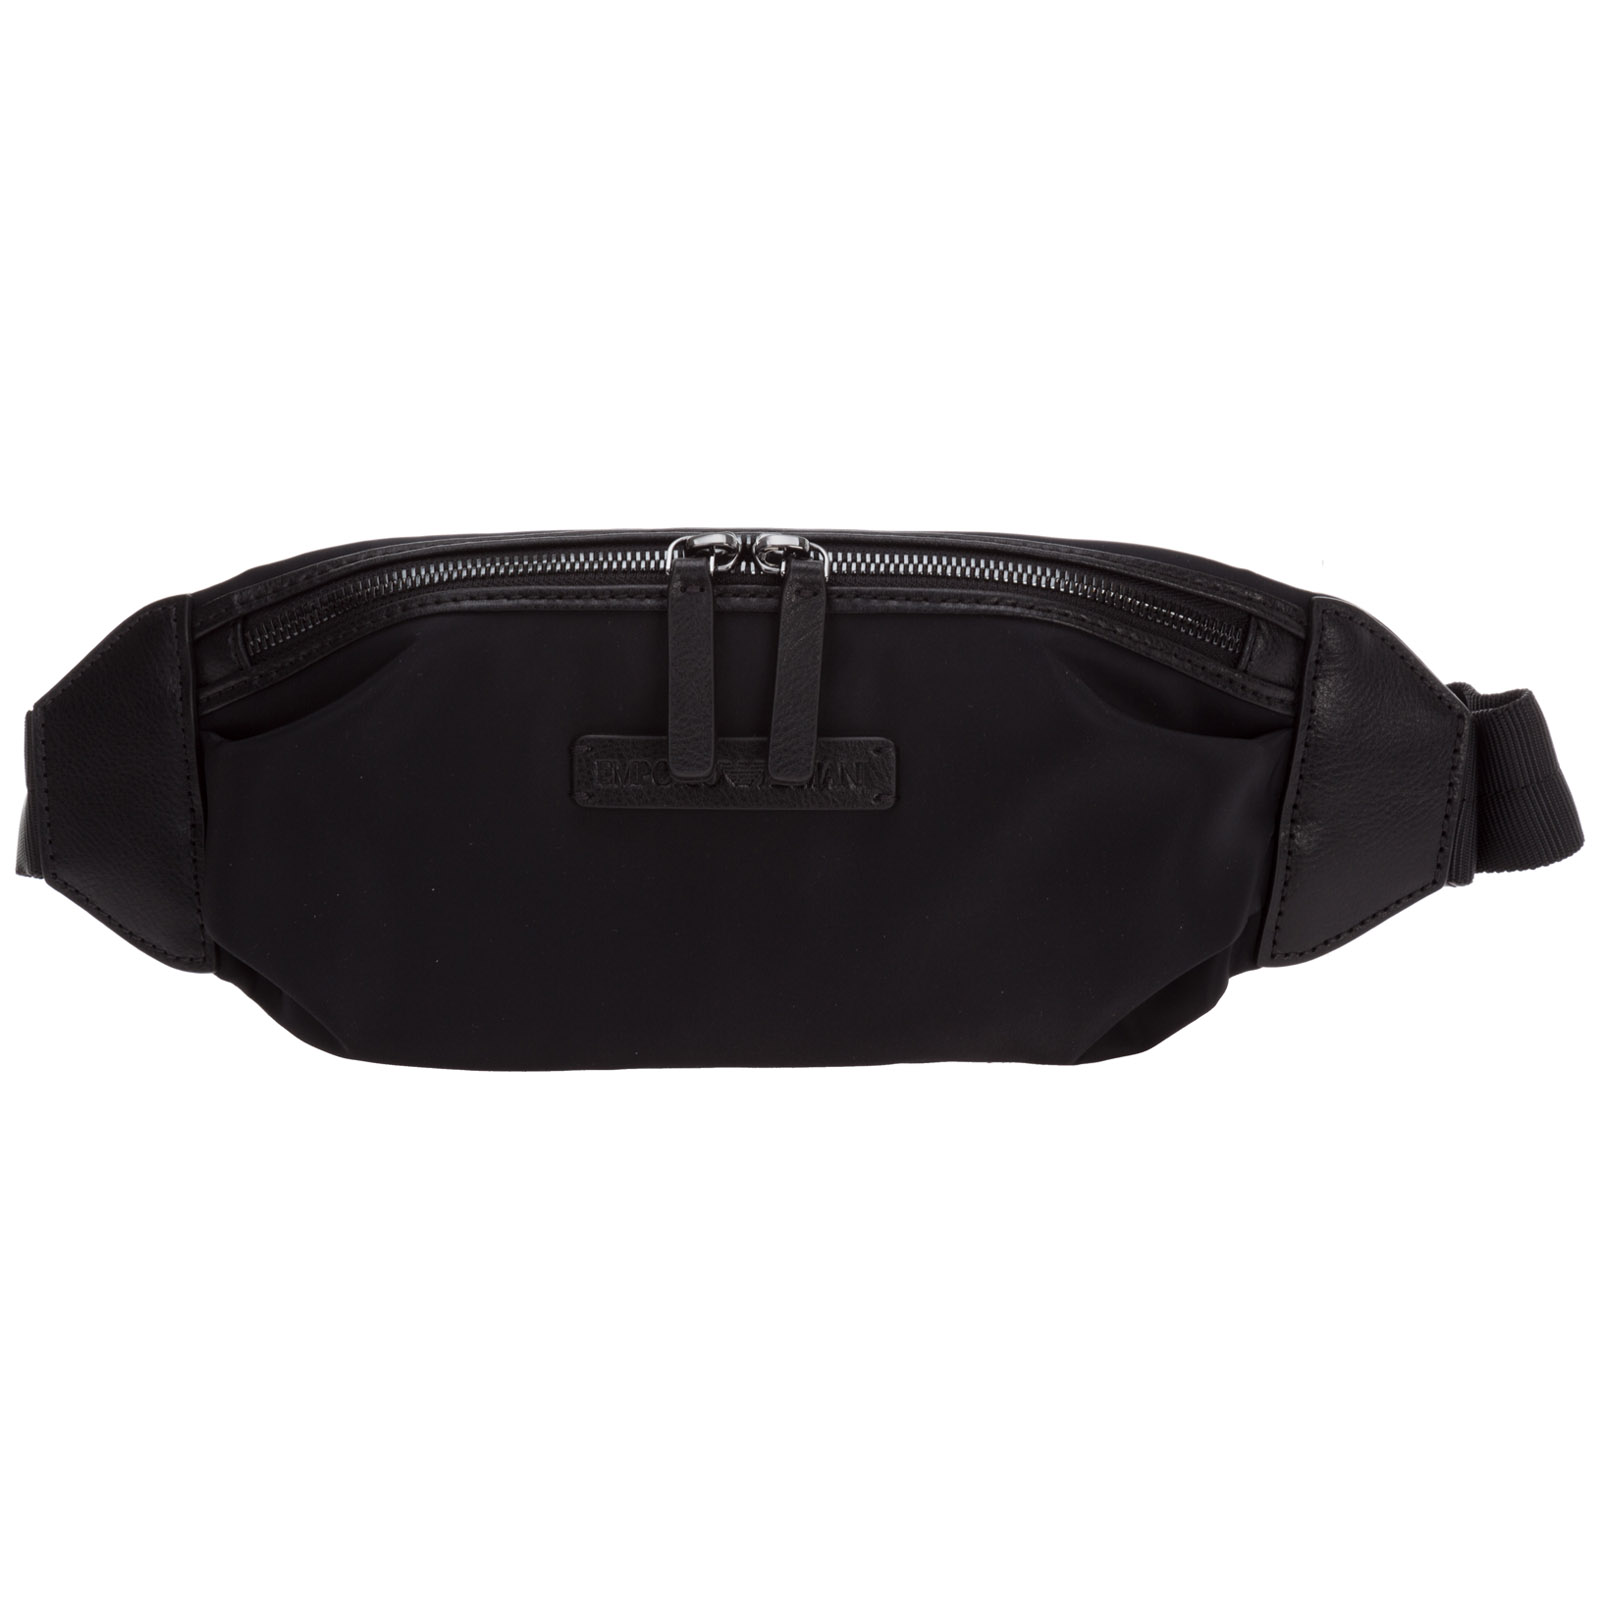 Emporio Armani MEN'S BELT BUM BAG HIP POUCH